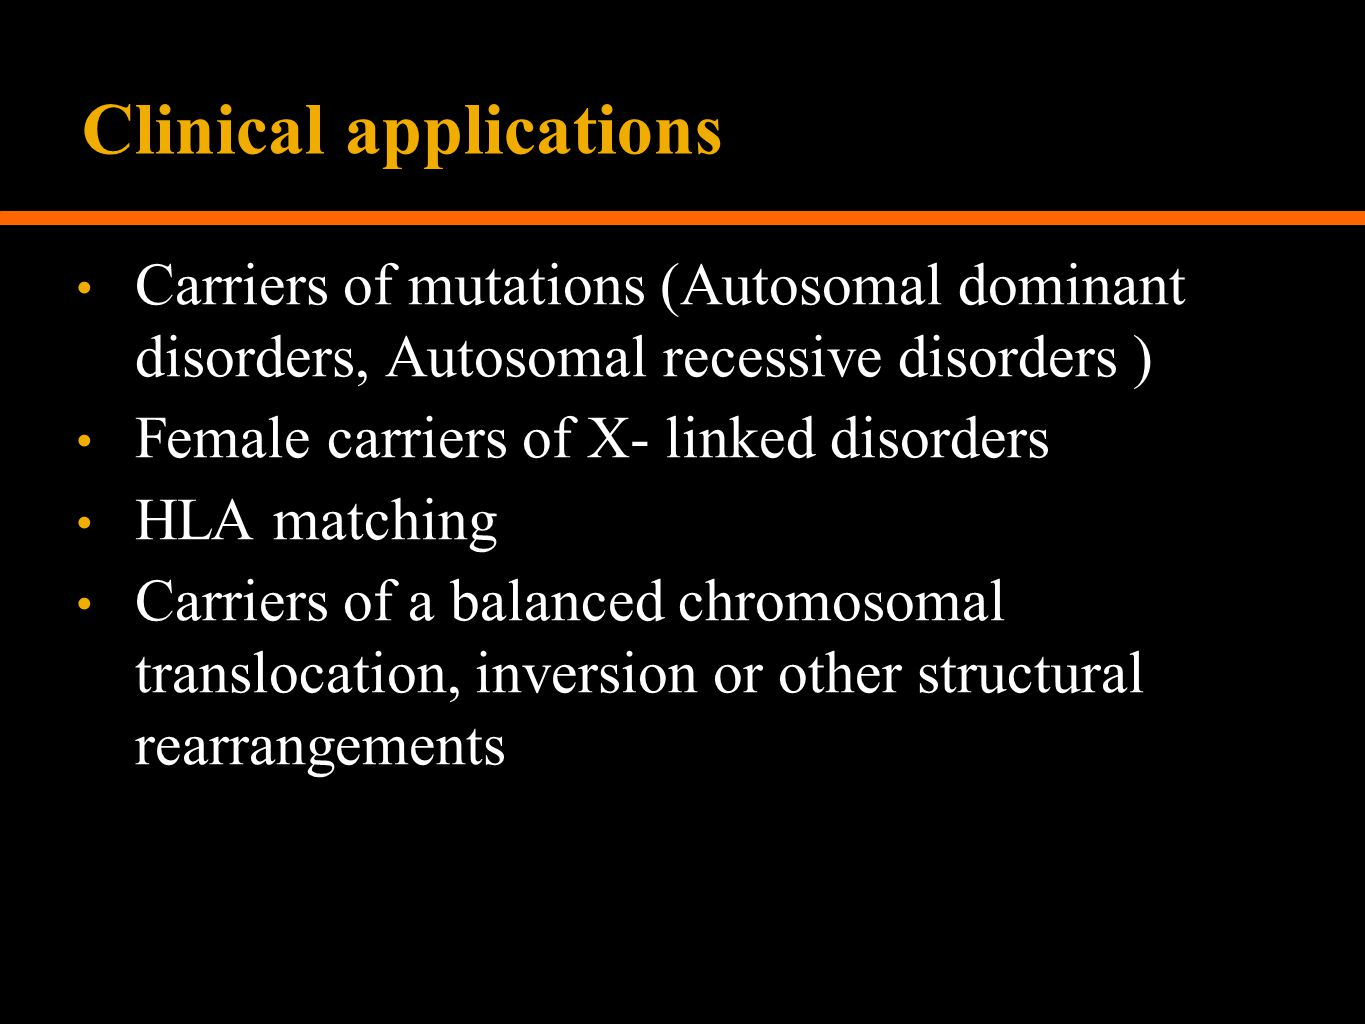 Clinical applications Carriers of mutations (Autosomal dominant disorders, Autosomal recessive disorders ) Female carriers of X- linked disorders HLA matching Carriers of a balanced chromosomal translocation, inversion or other structural rearrangements